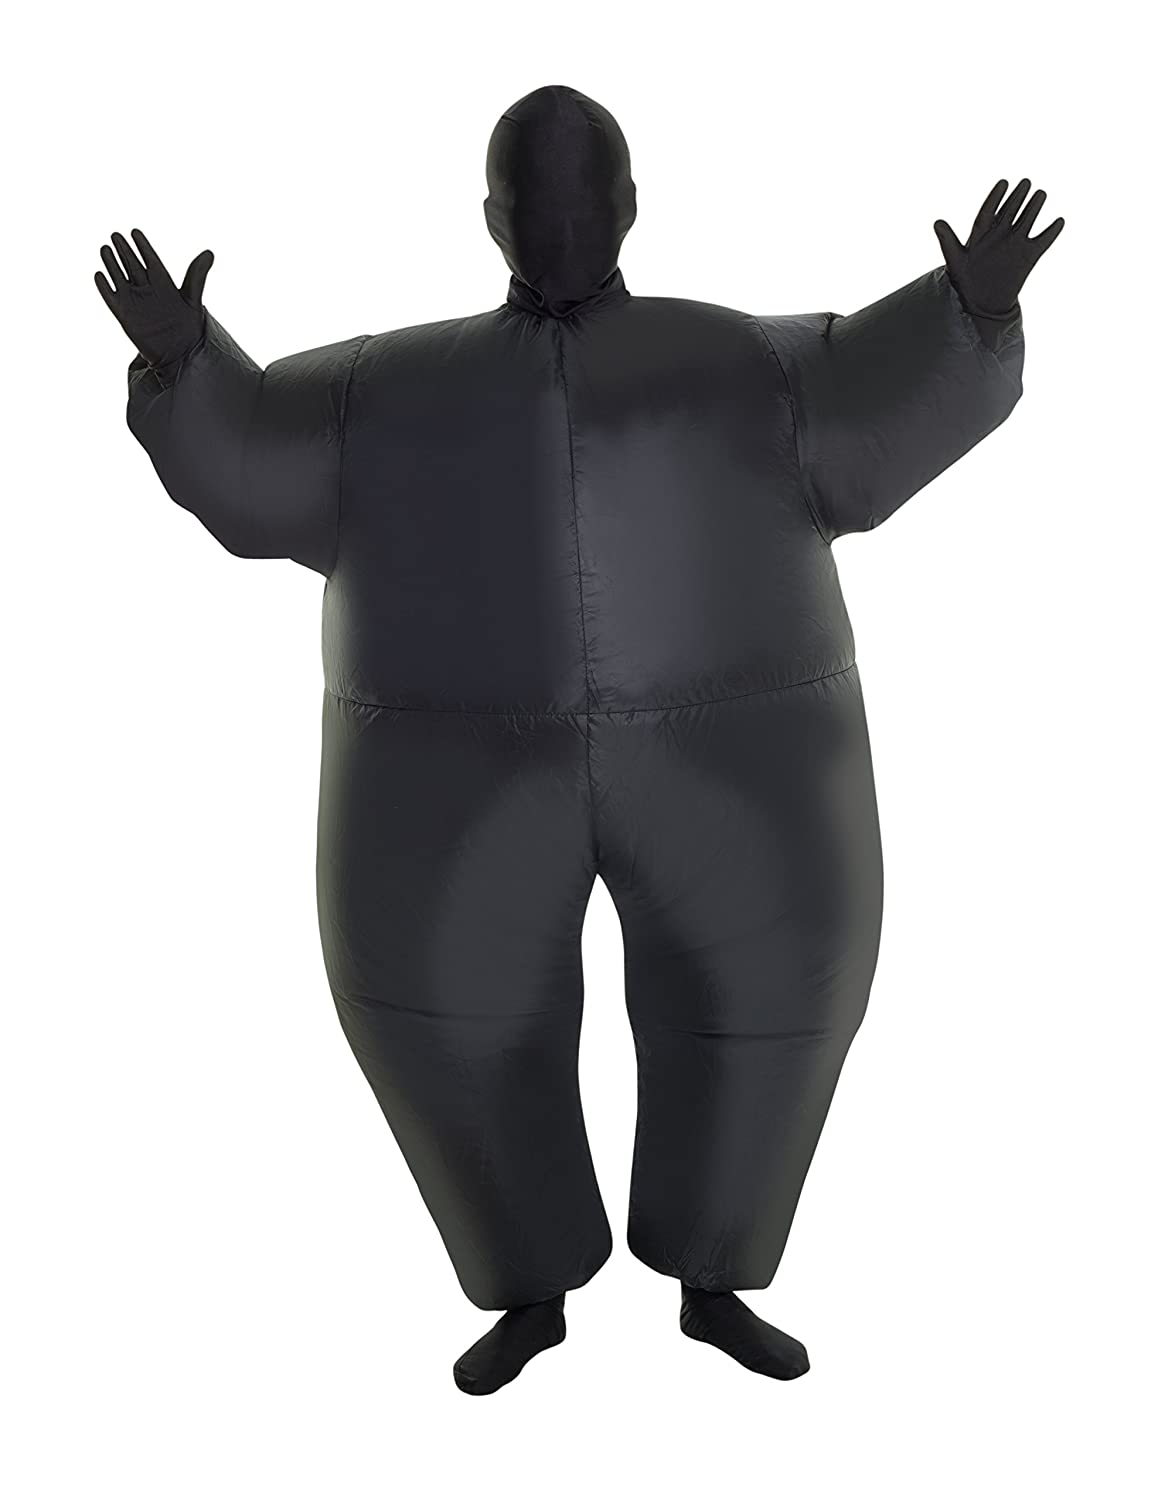 Inflatable Adult & Childrens Costume, Great Selection of Mens, Womens Boys & Girls MegaMorph Fat Suits, Just Blow Them Up and Blow Everyone Away.